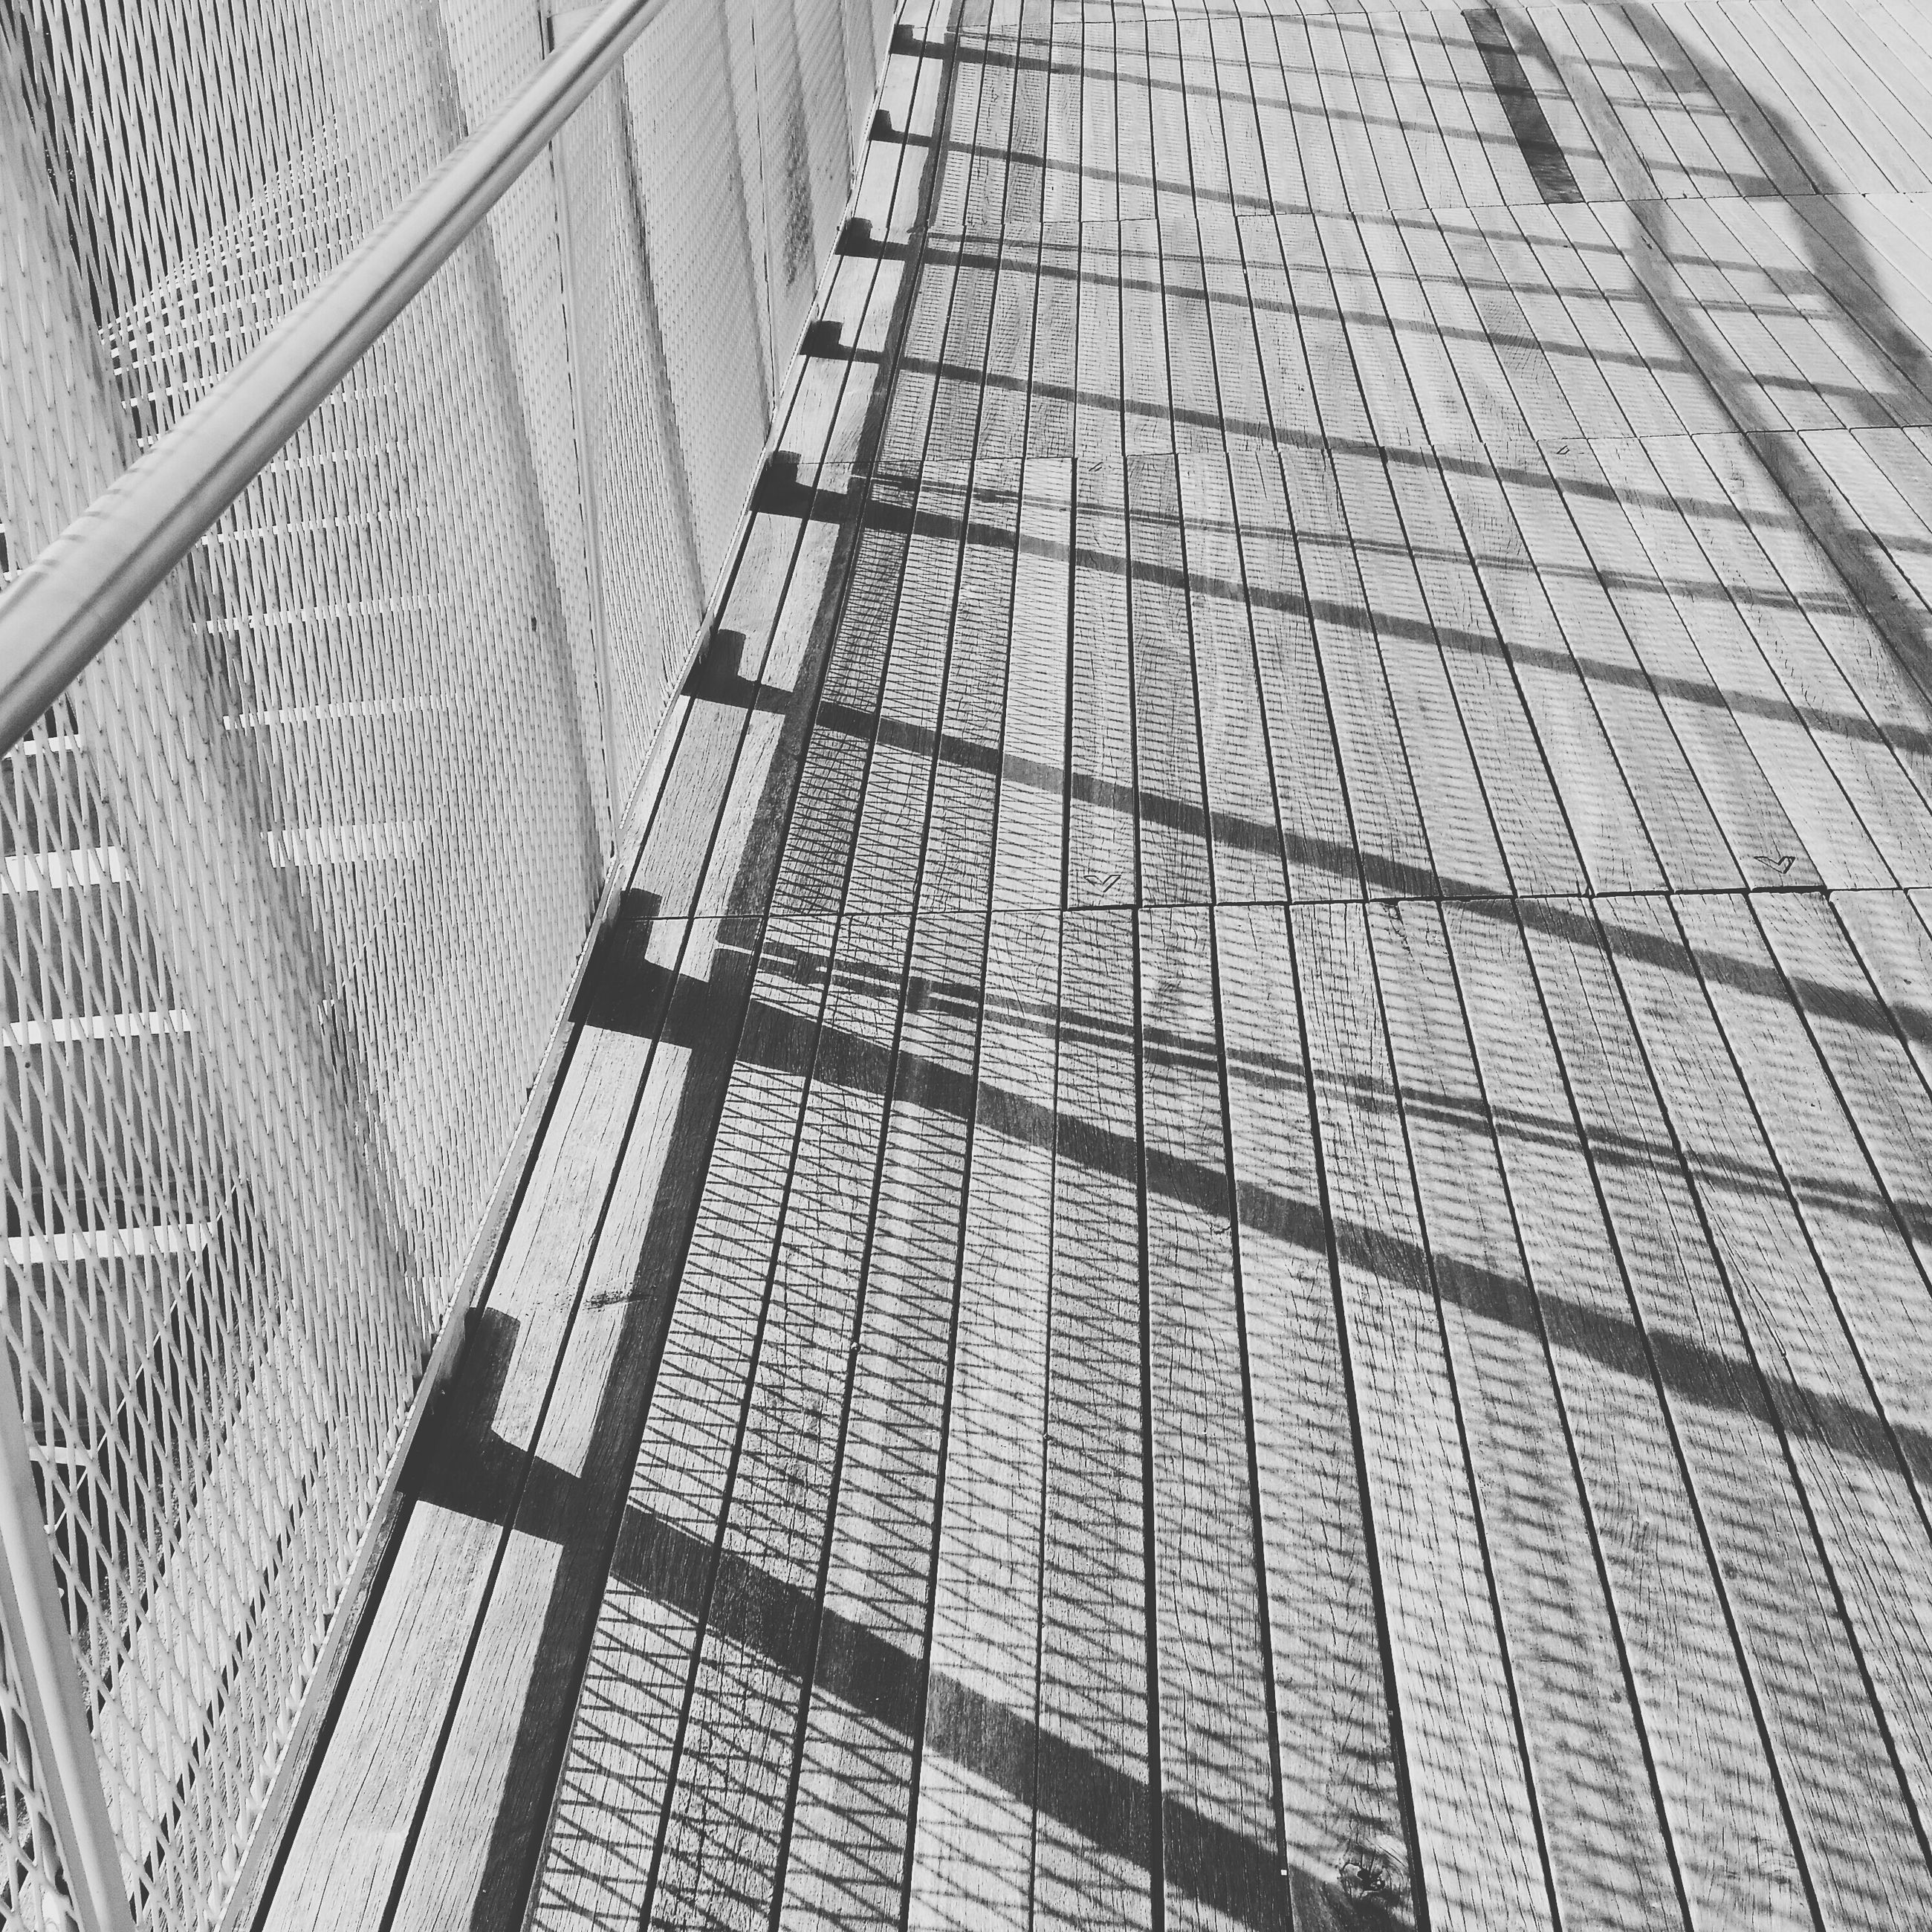 pattern, high angle view, shadow, railing, built structure, textured, sunlight, wall - building feature, day, no people, metal, steps, architecture, steps and staircases, outdoors, empty, design, the way forward, close-up, text